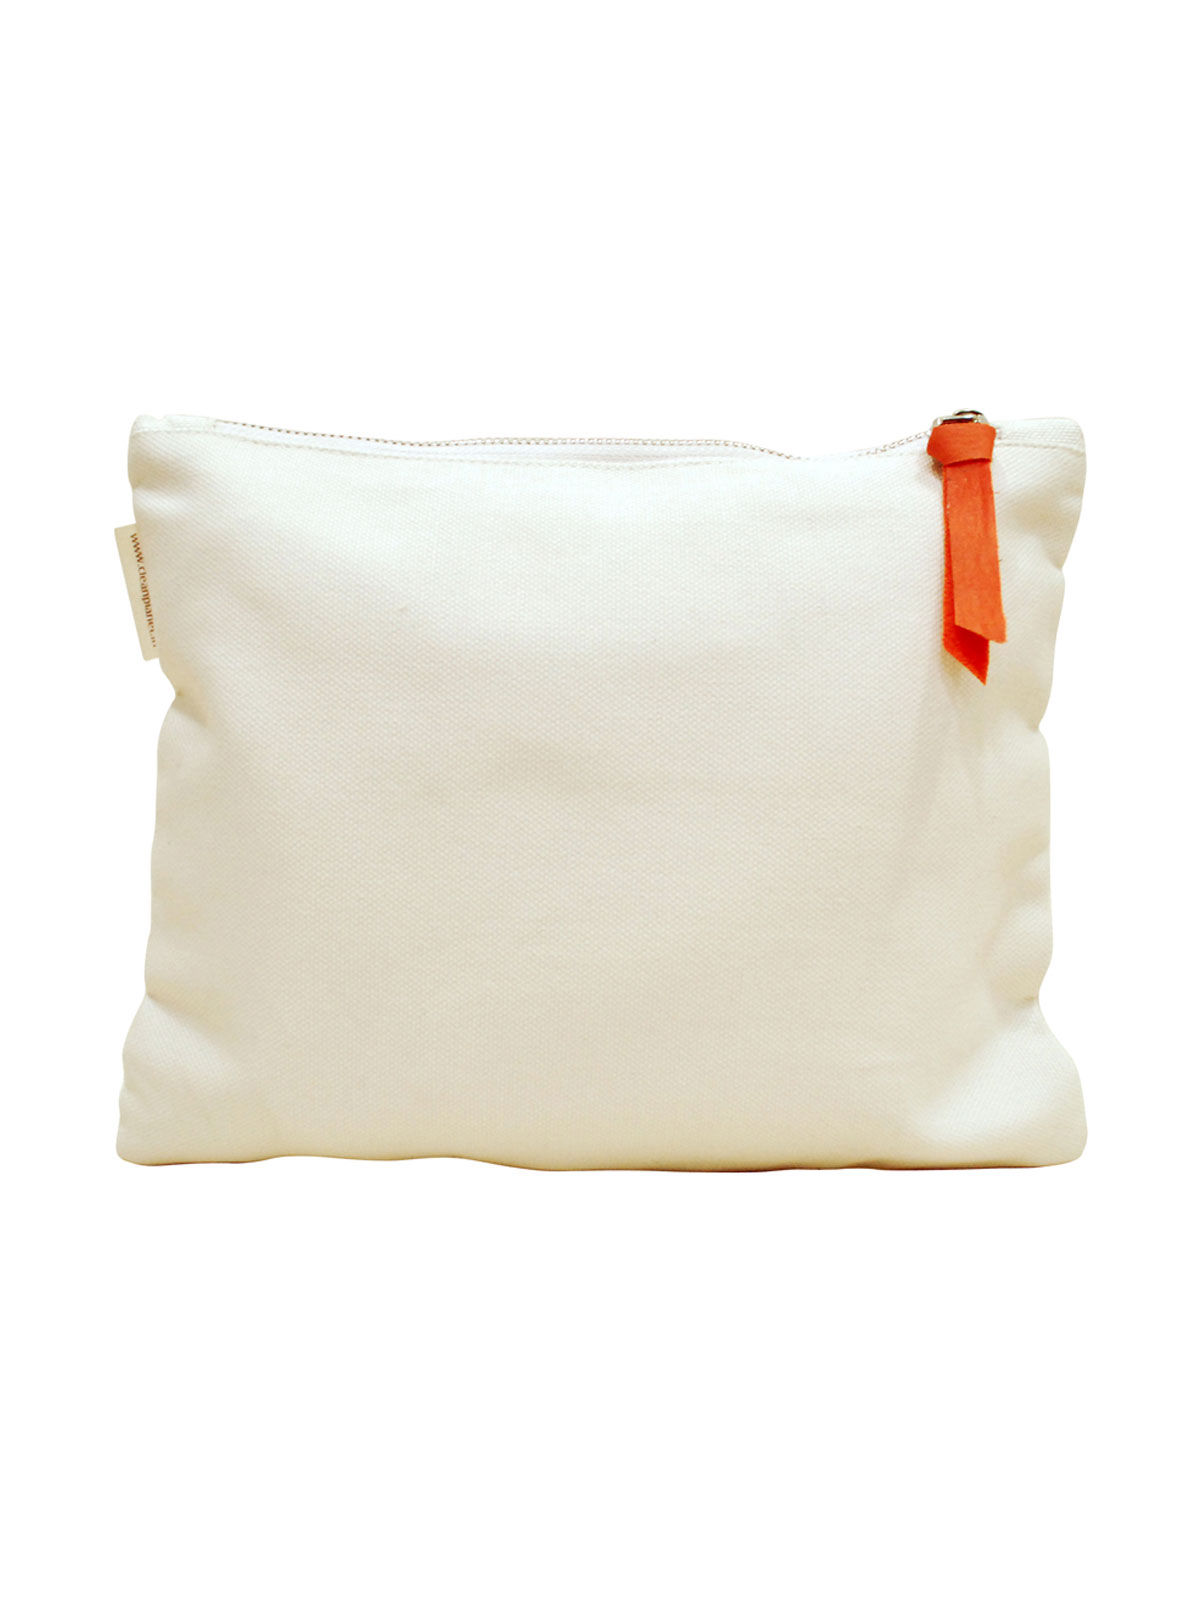 India Pouch